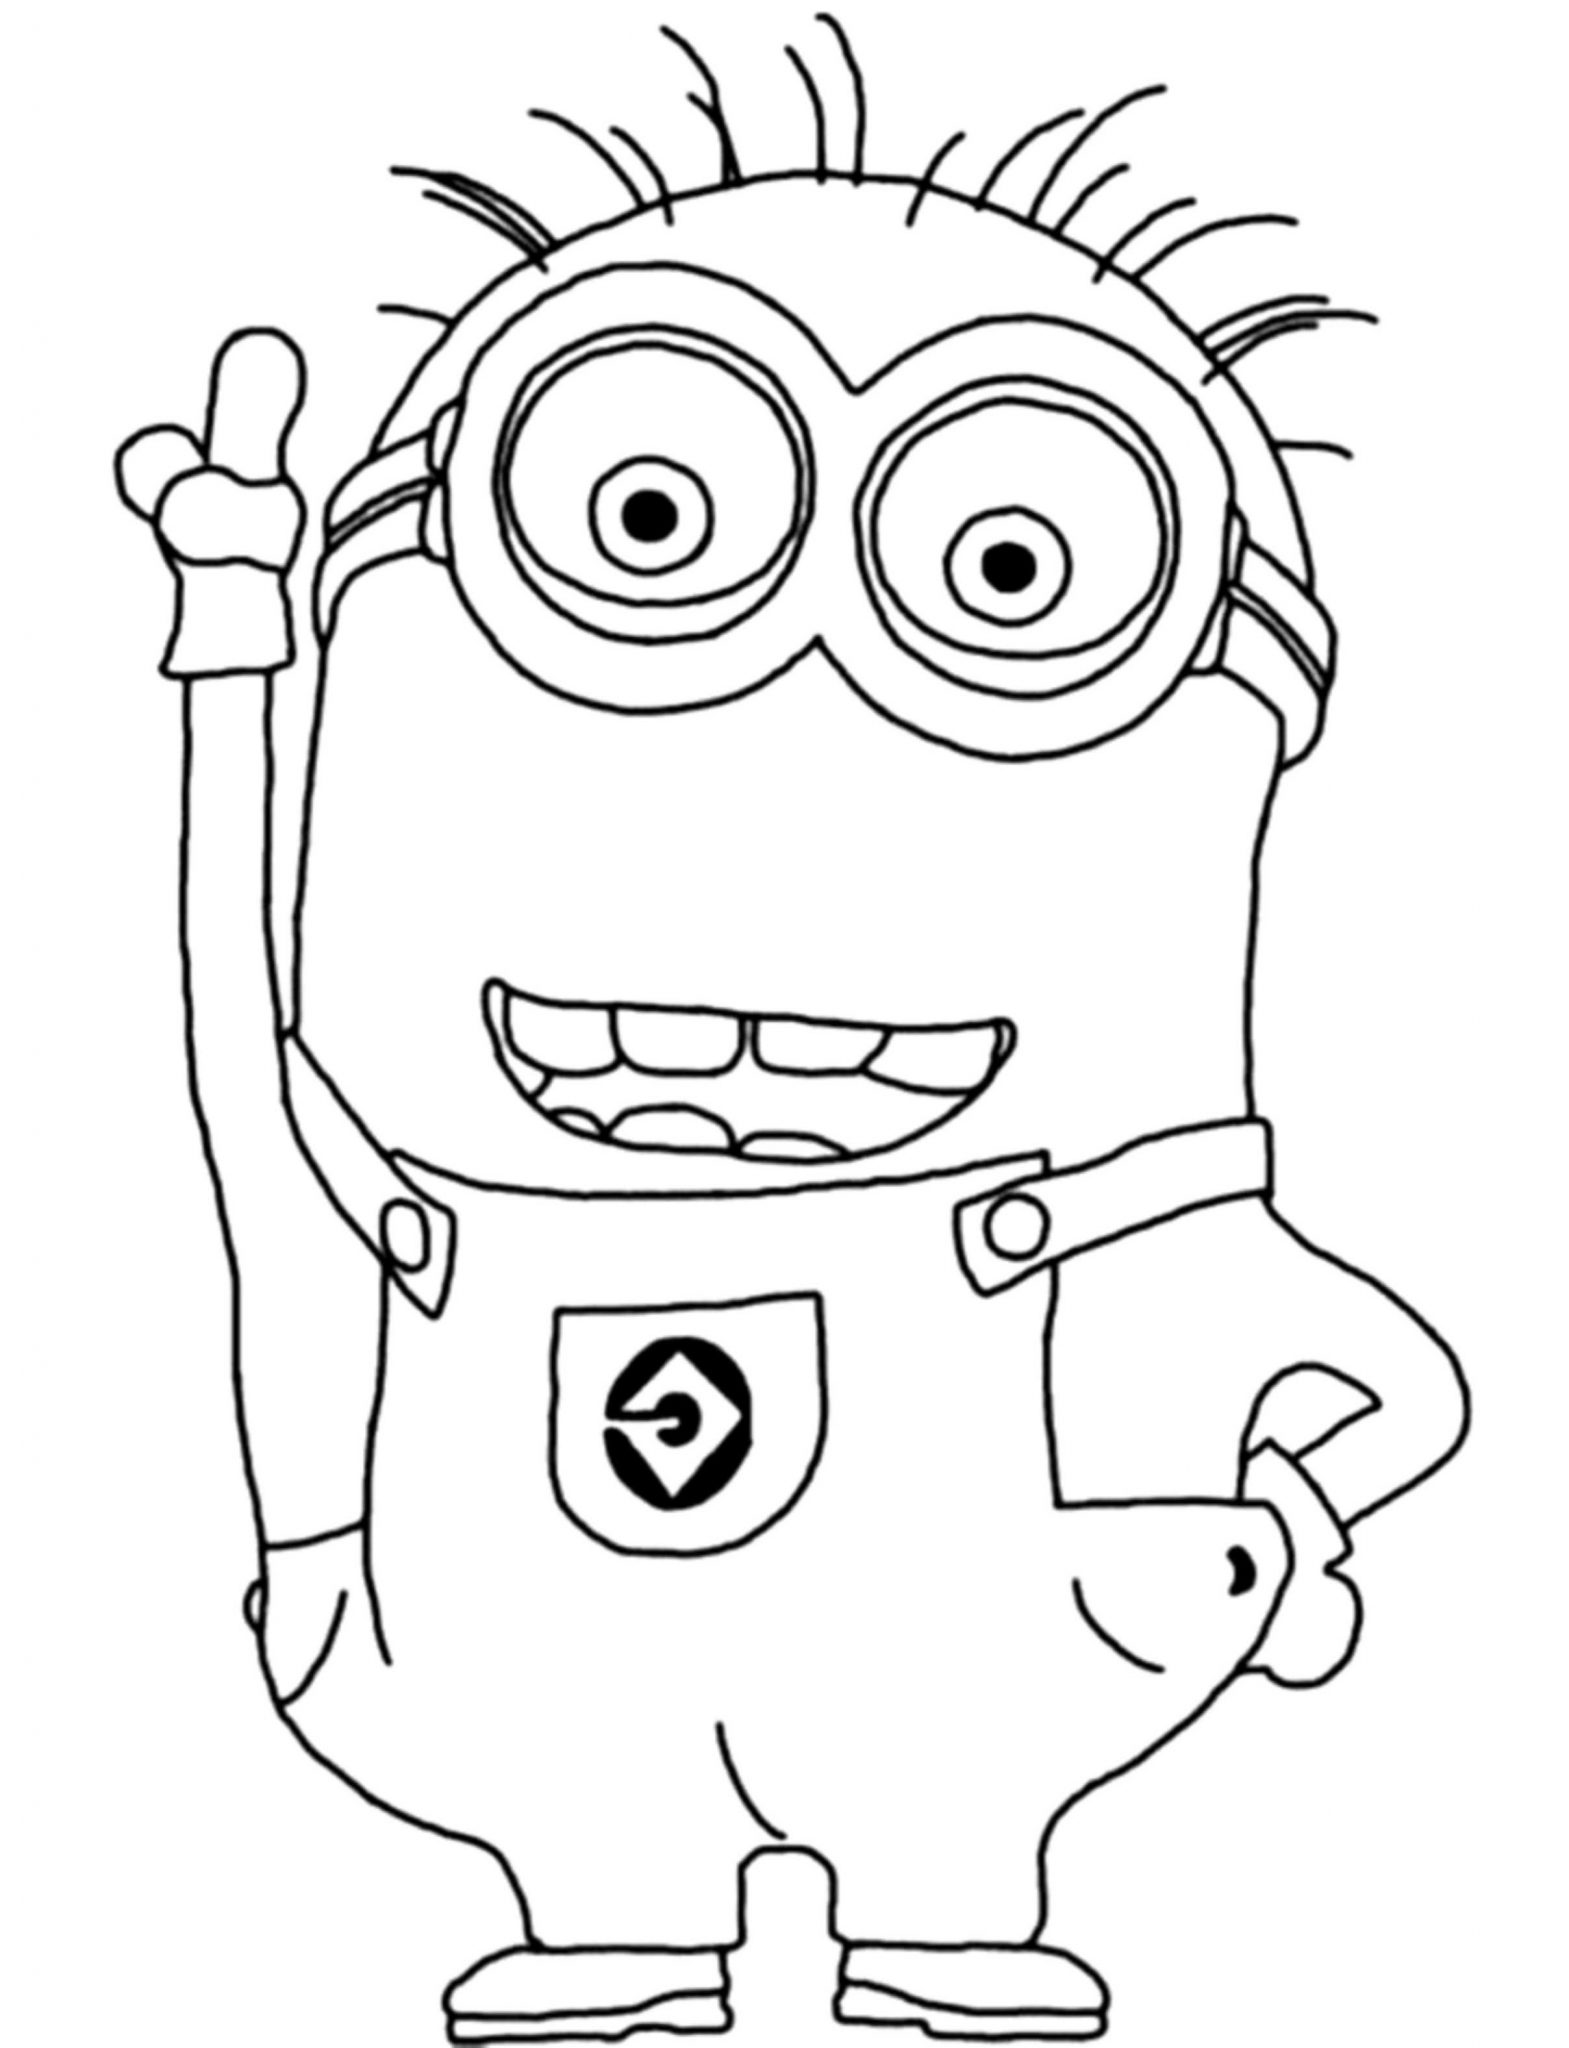 Print Download Minion Coloring Pages For Kids To Have Fun